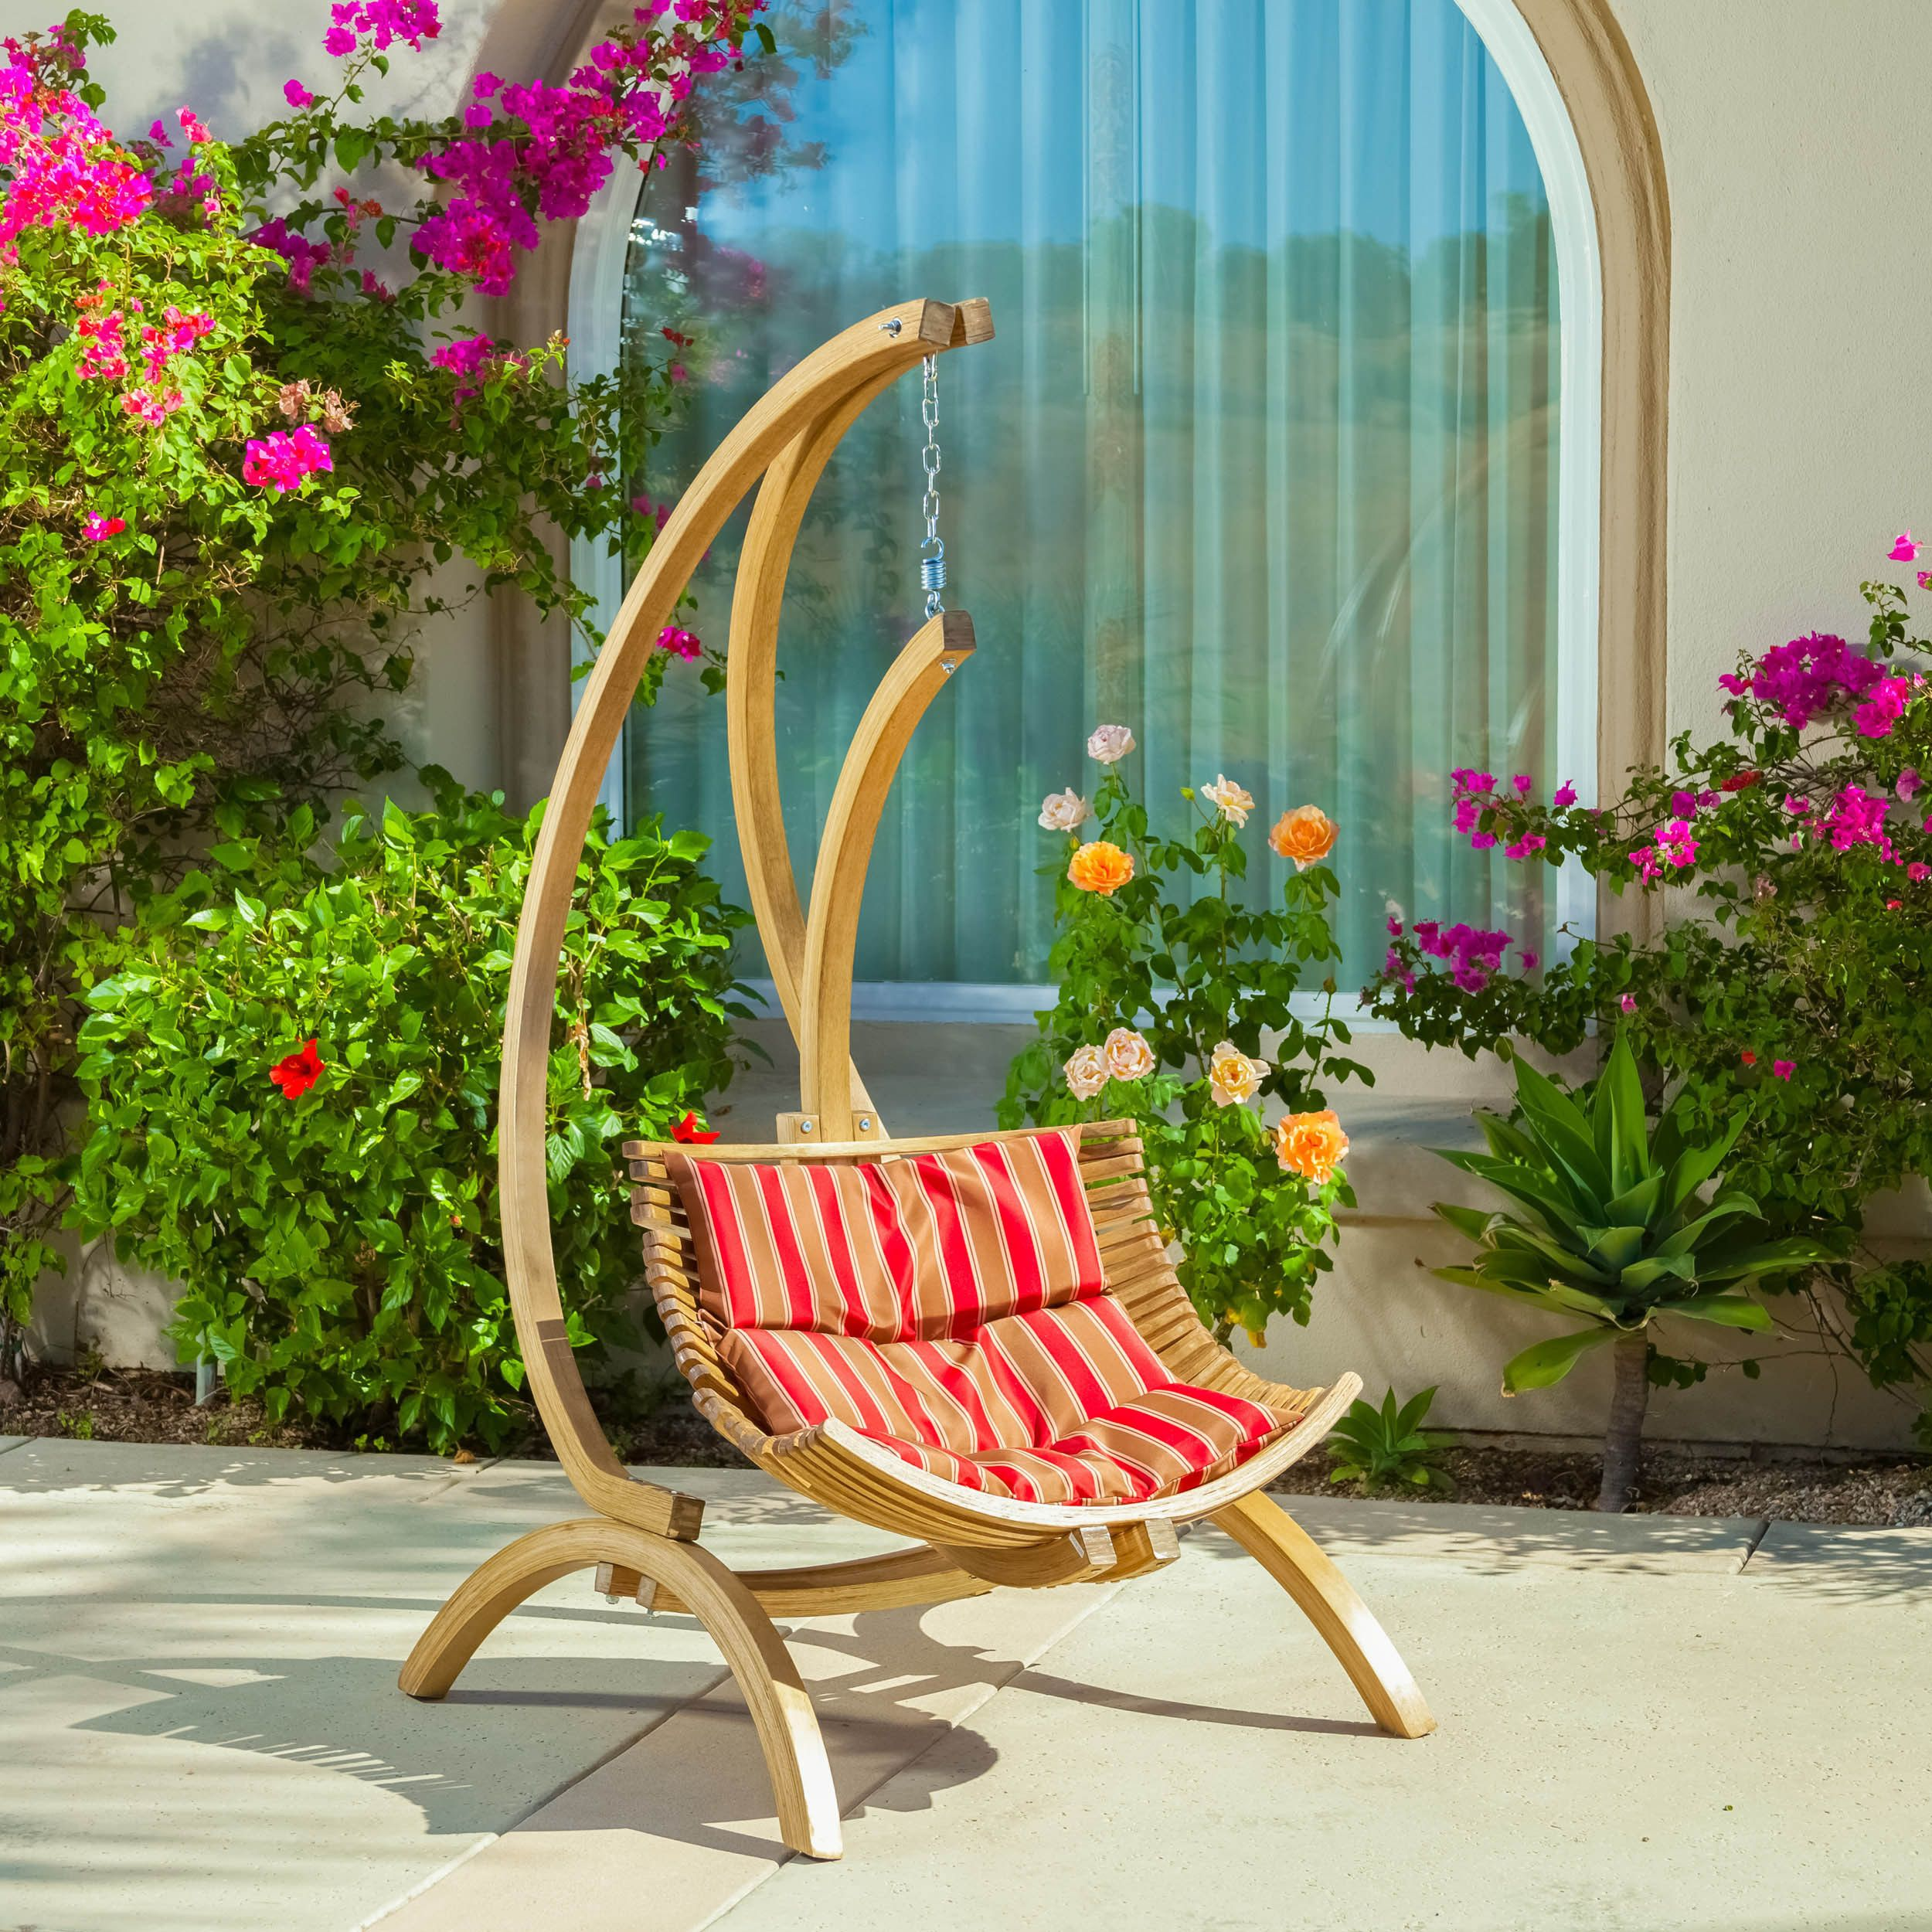 The topanga wooden hanging chair makes the perfect addition to any